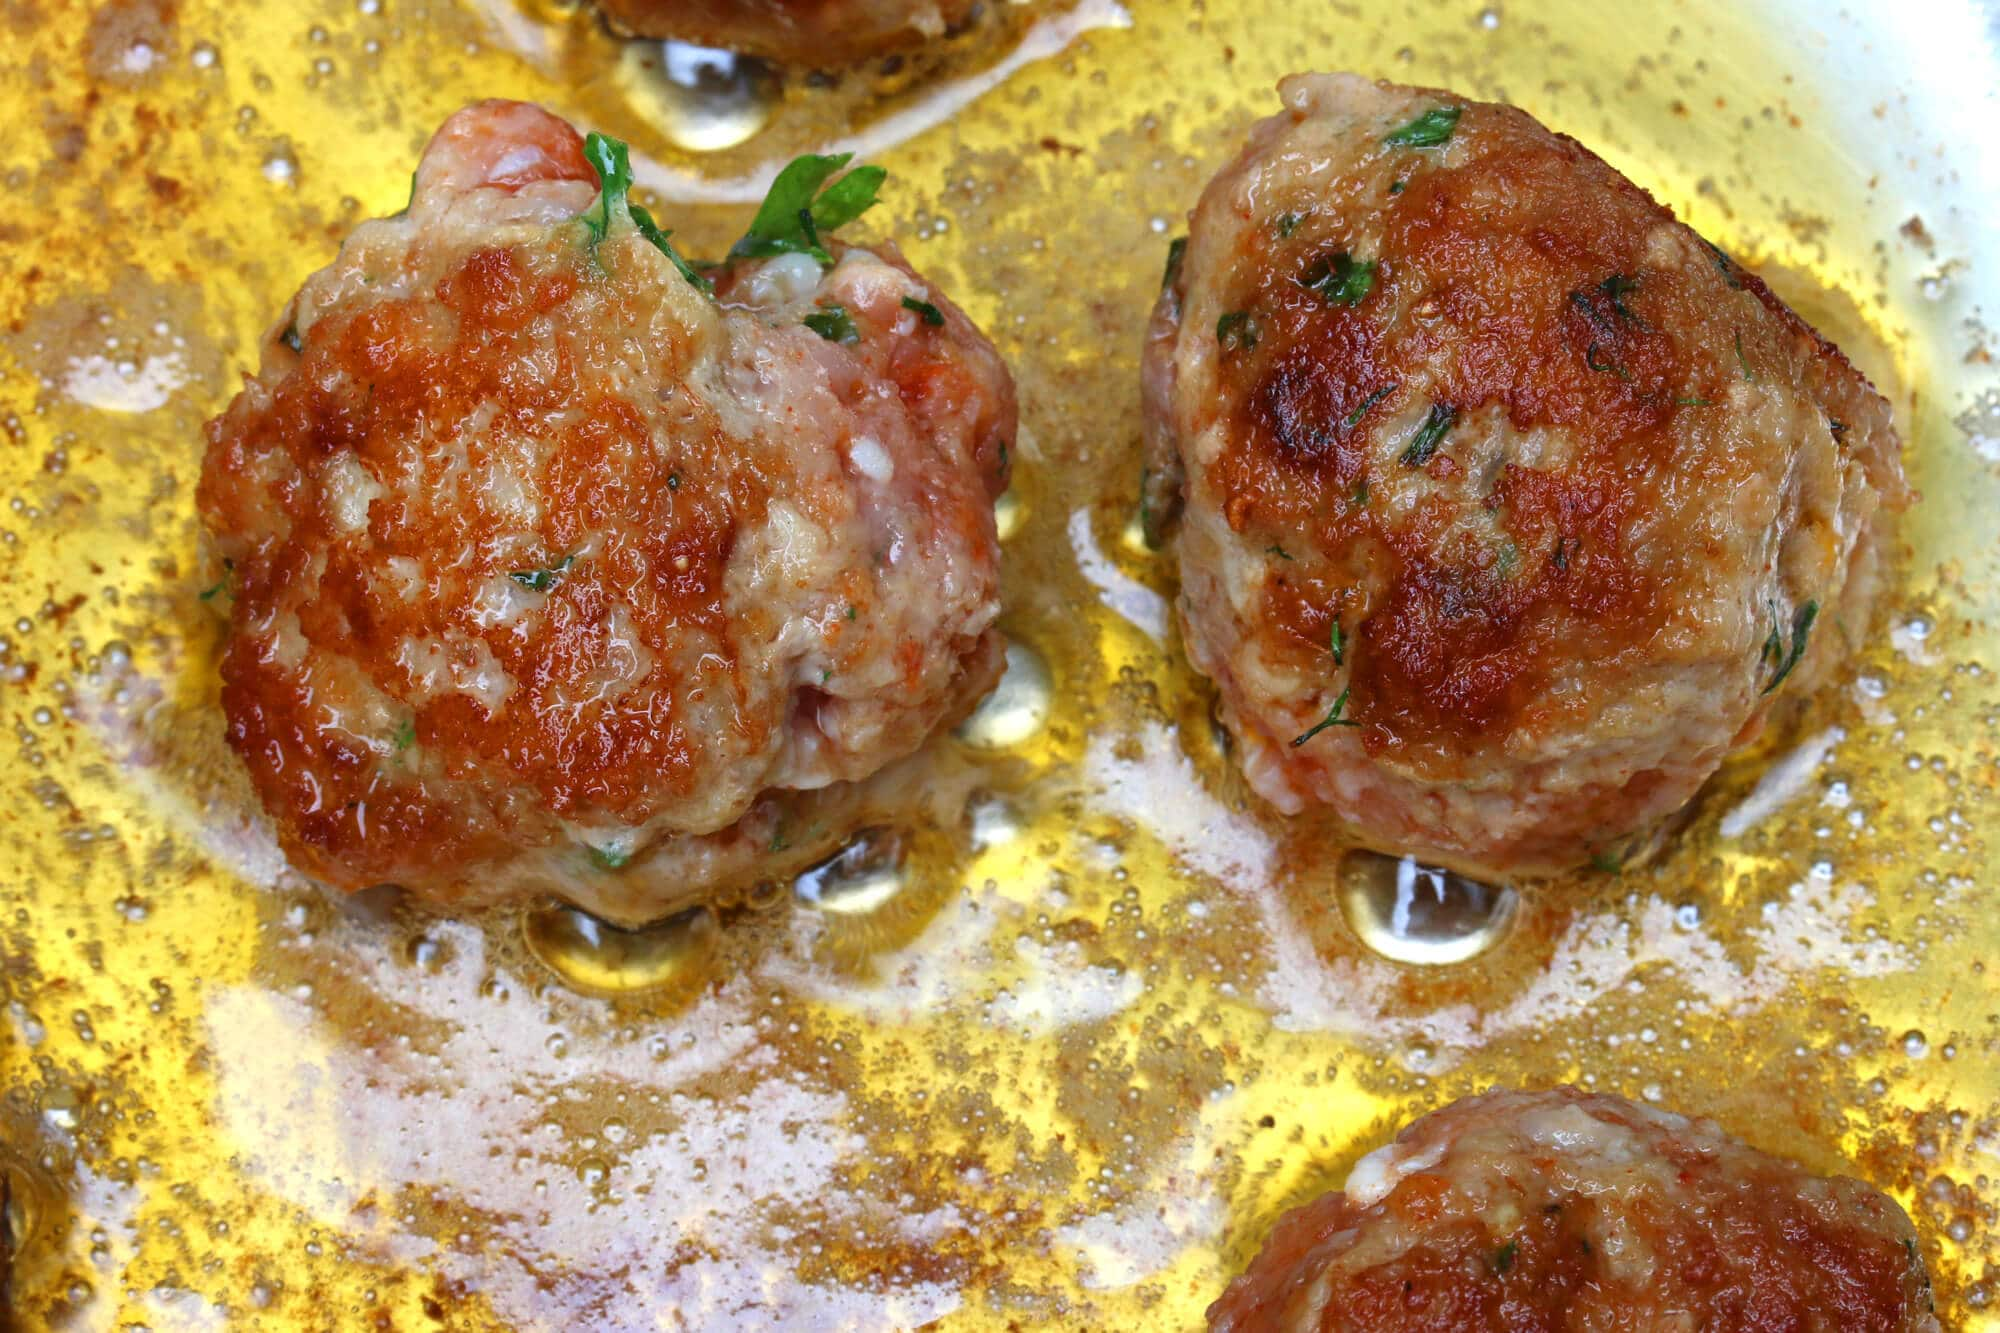 hungarian-meatballs-new-prep-23